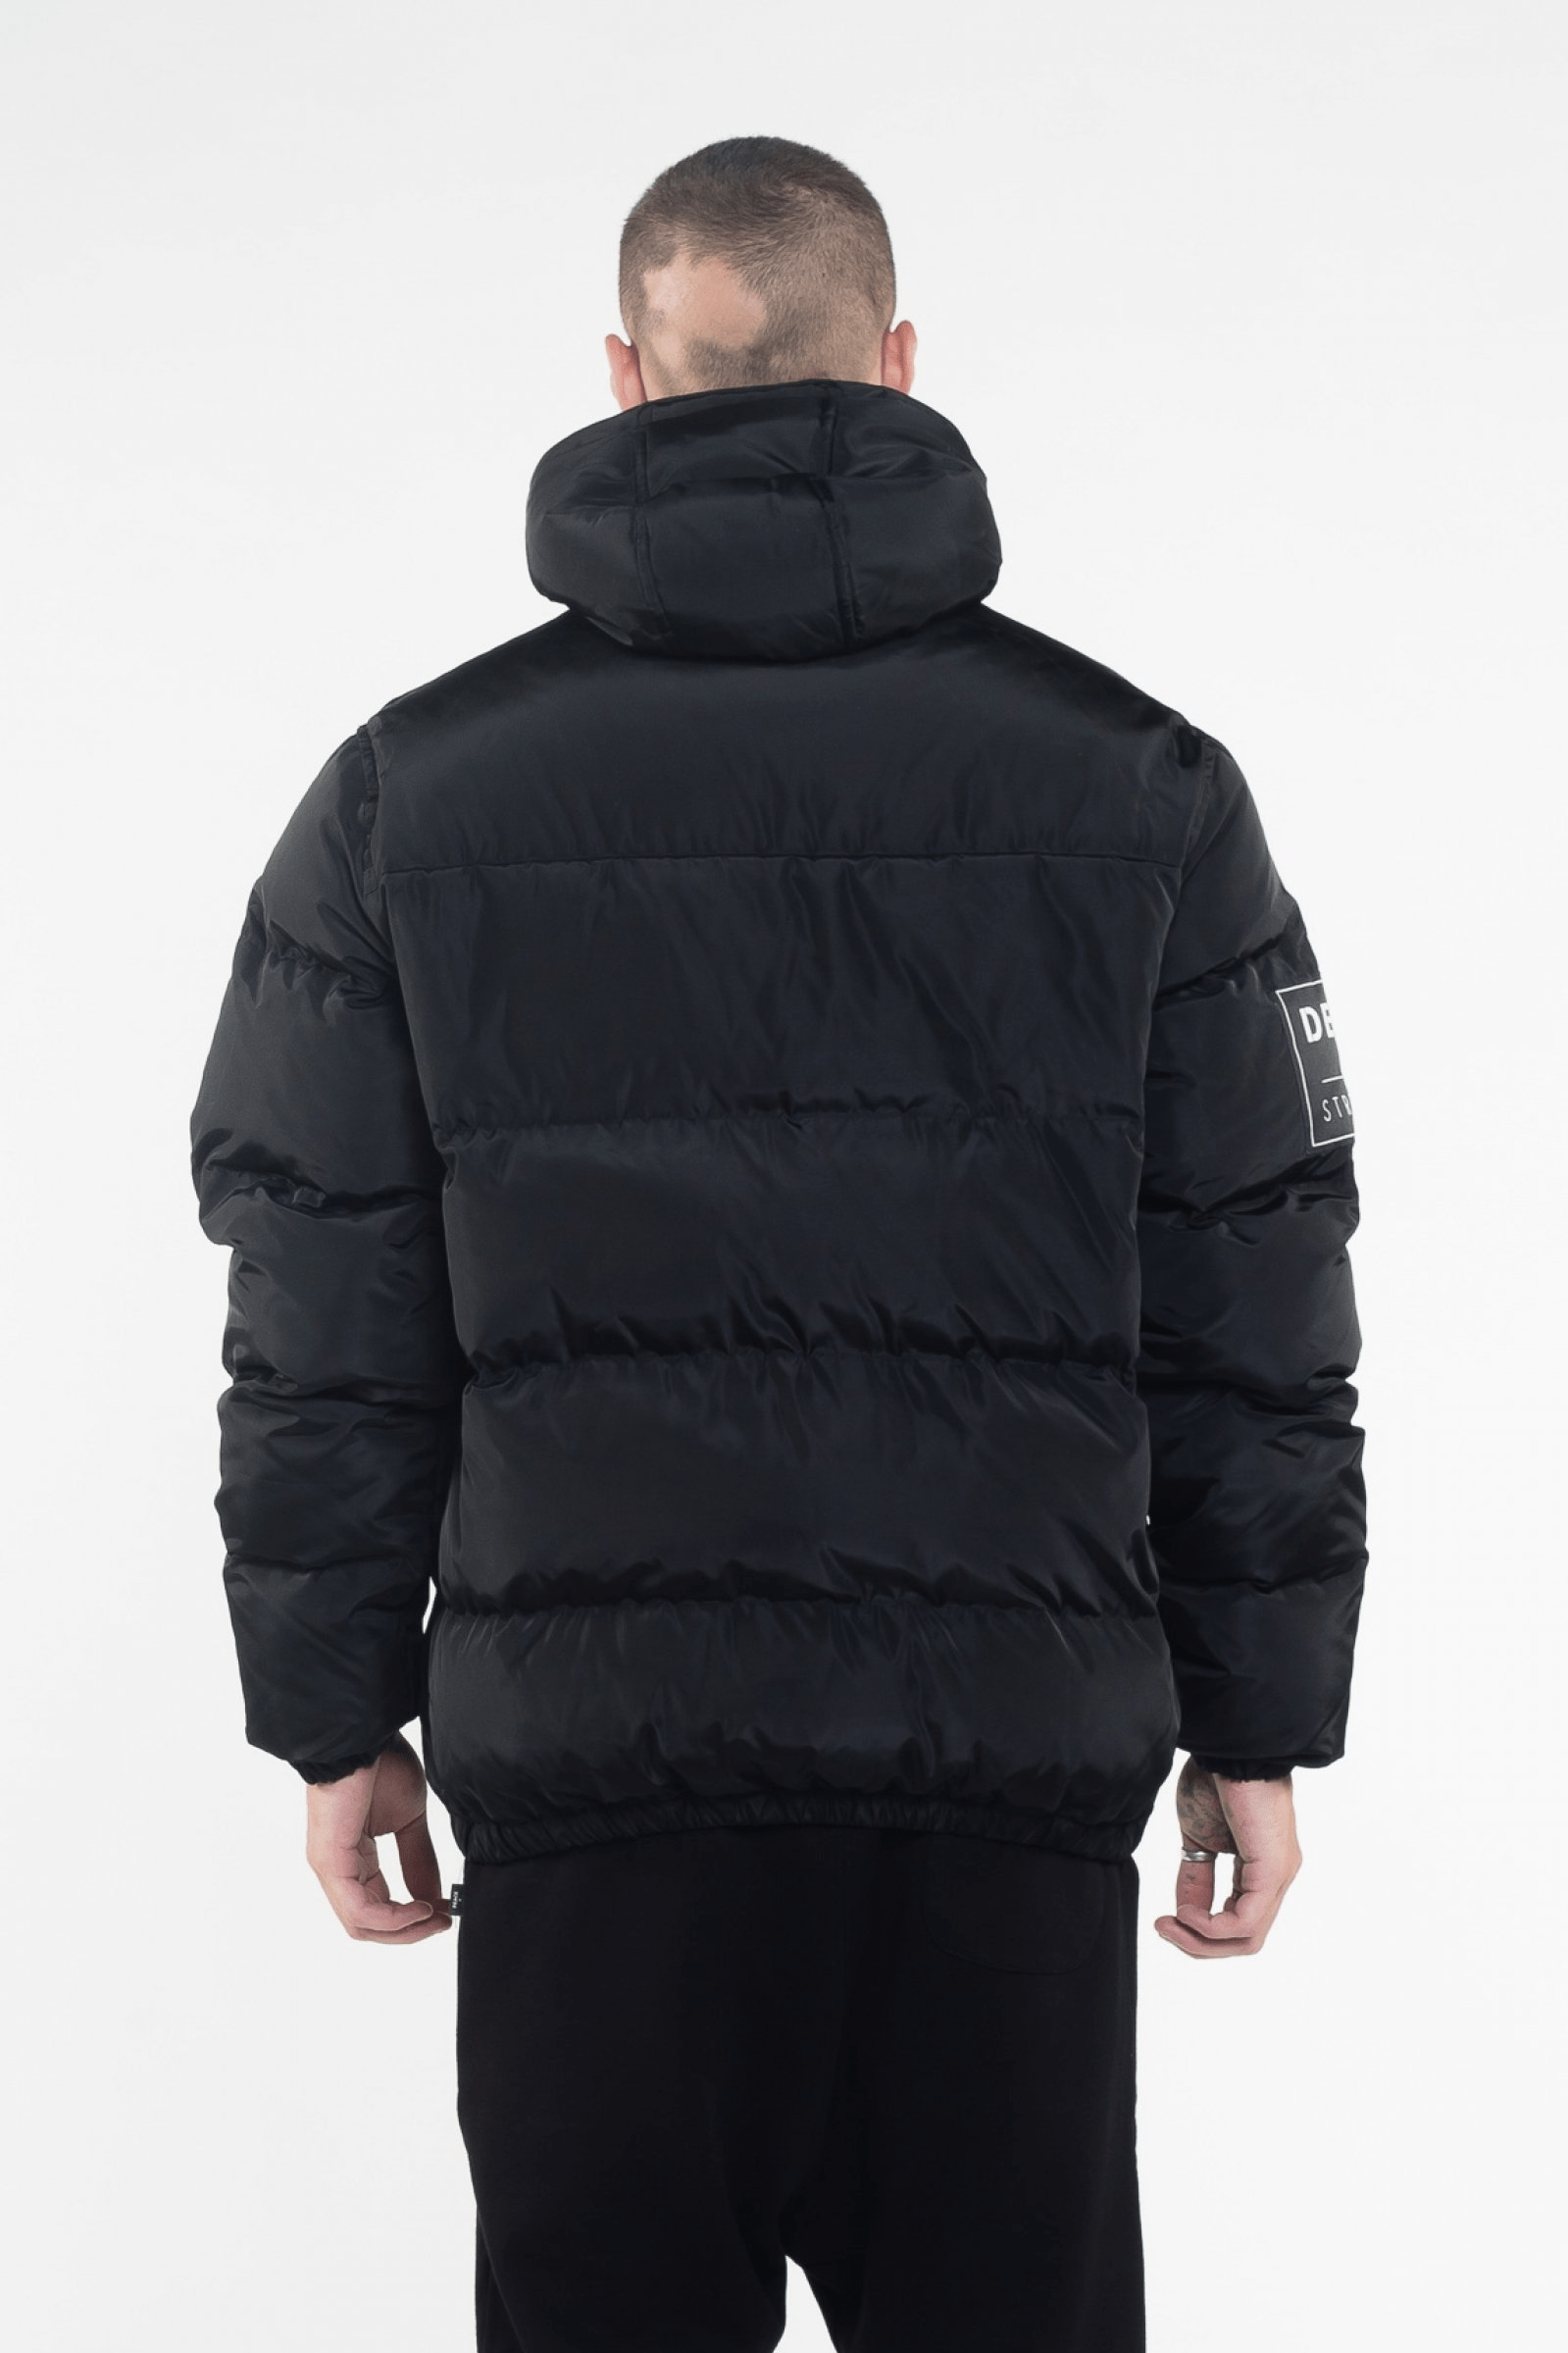 VIK Black Down Jacket - The Bobby Boga